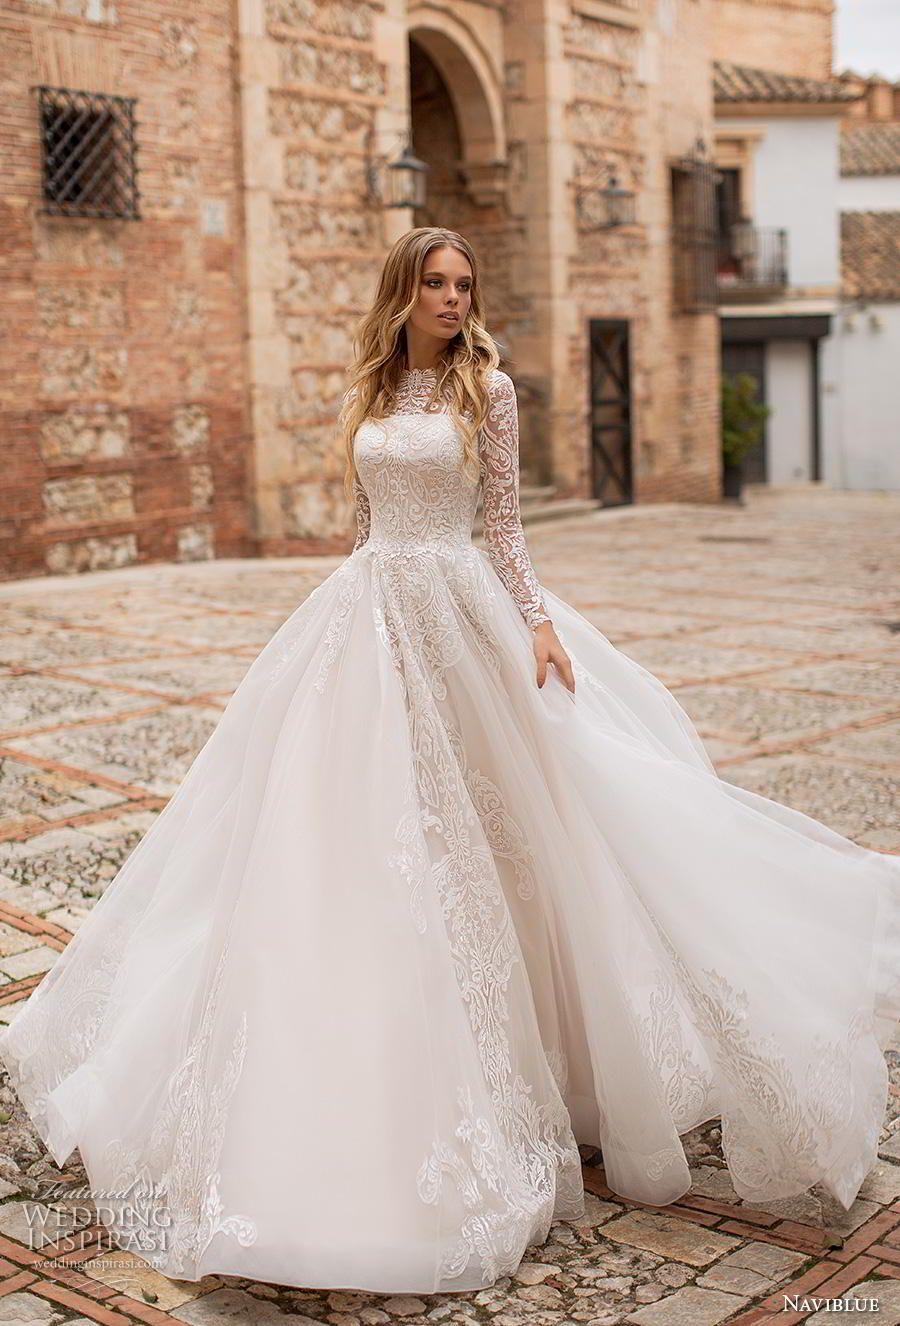 fb406f44c37 naviblue 2019 bridal long sleeves illusion bateau straight across neckline heavily  embellished bodice romantic a line wedding dress covered lace back royal ...